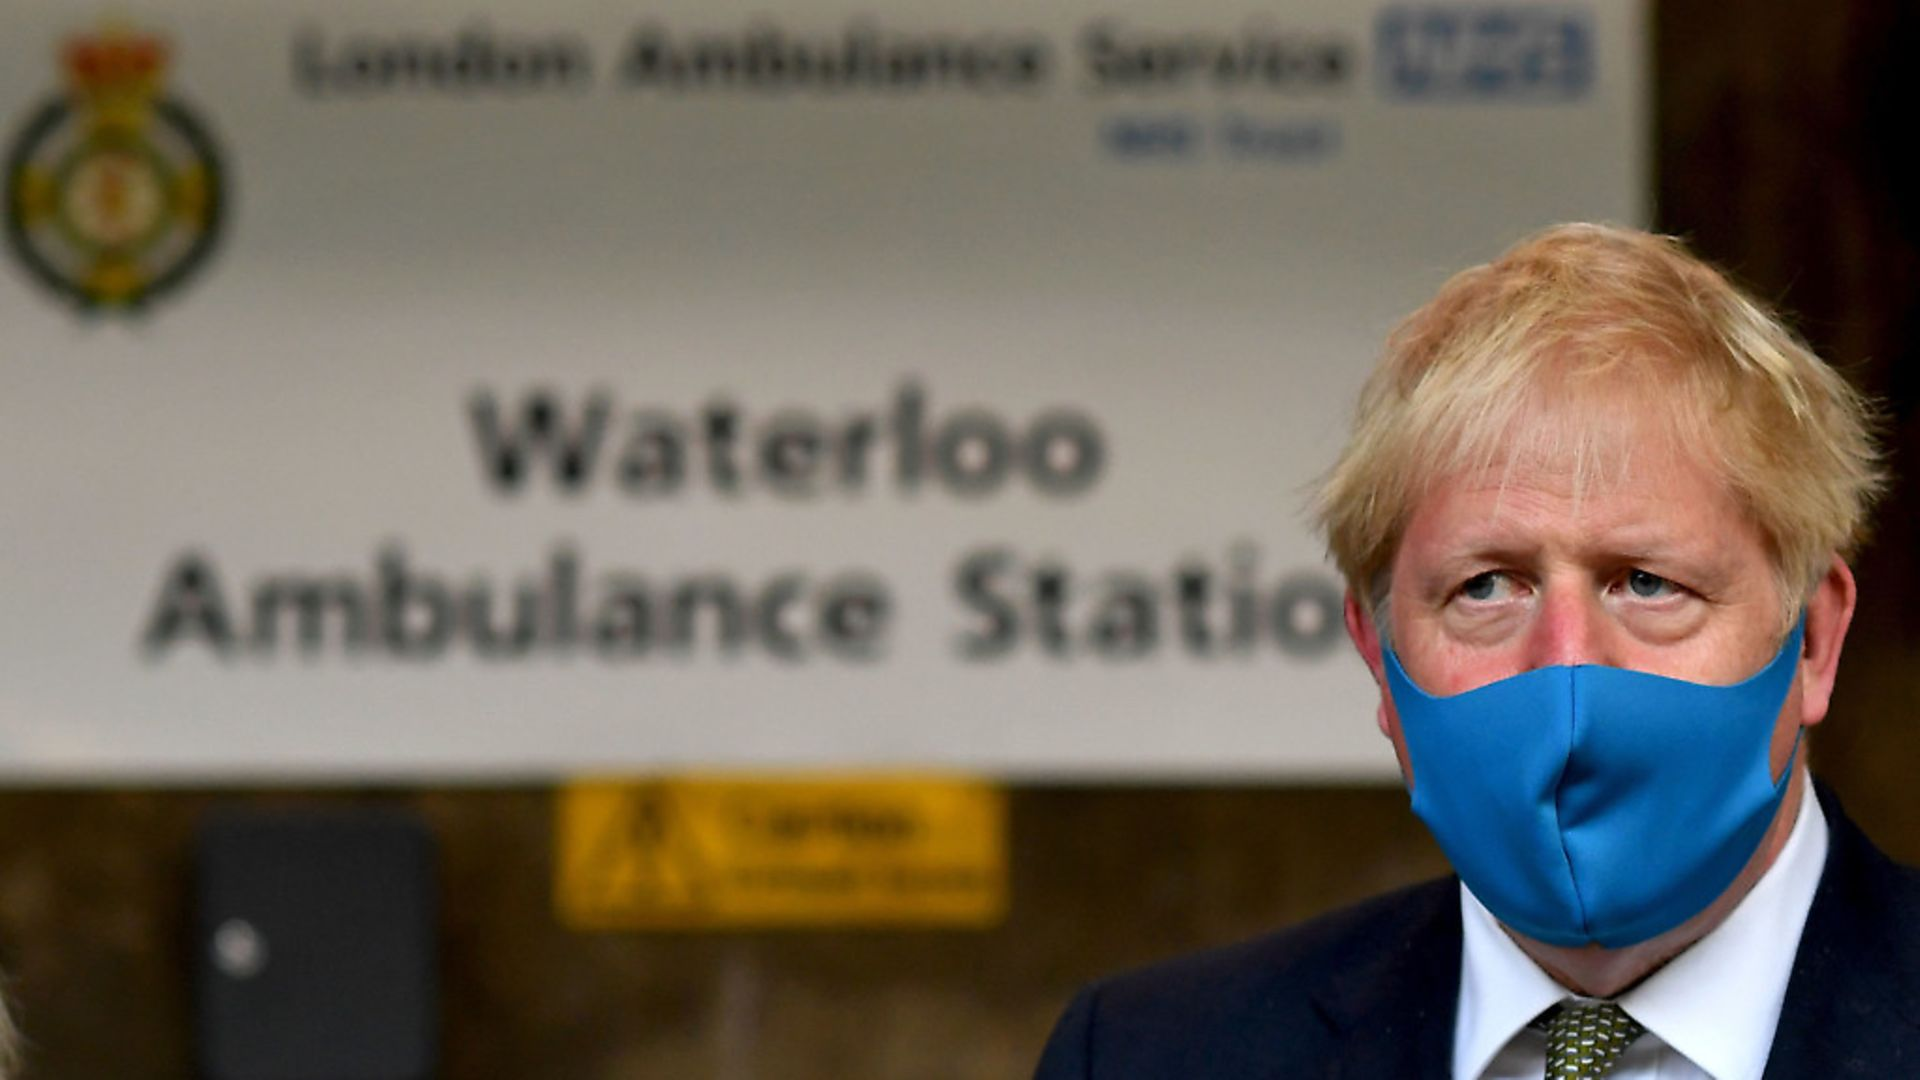 Prime Minister Boris Johnson, wearing a face mask, during a visit to the headquarters of the London Ambulance Service NHS Trust. Photograph: Ben Stansall/PA Wire - Credit: PA